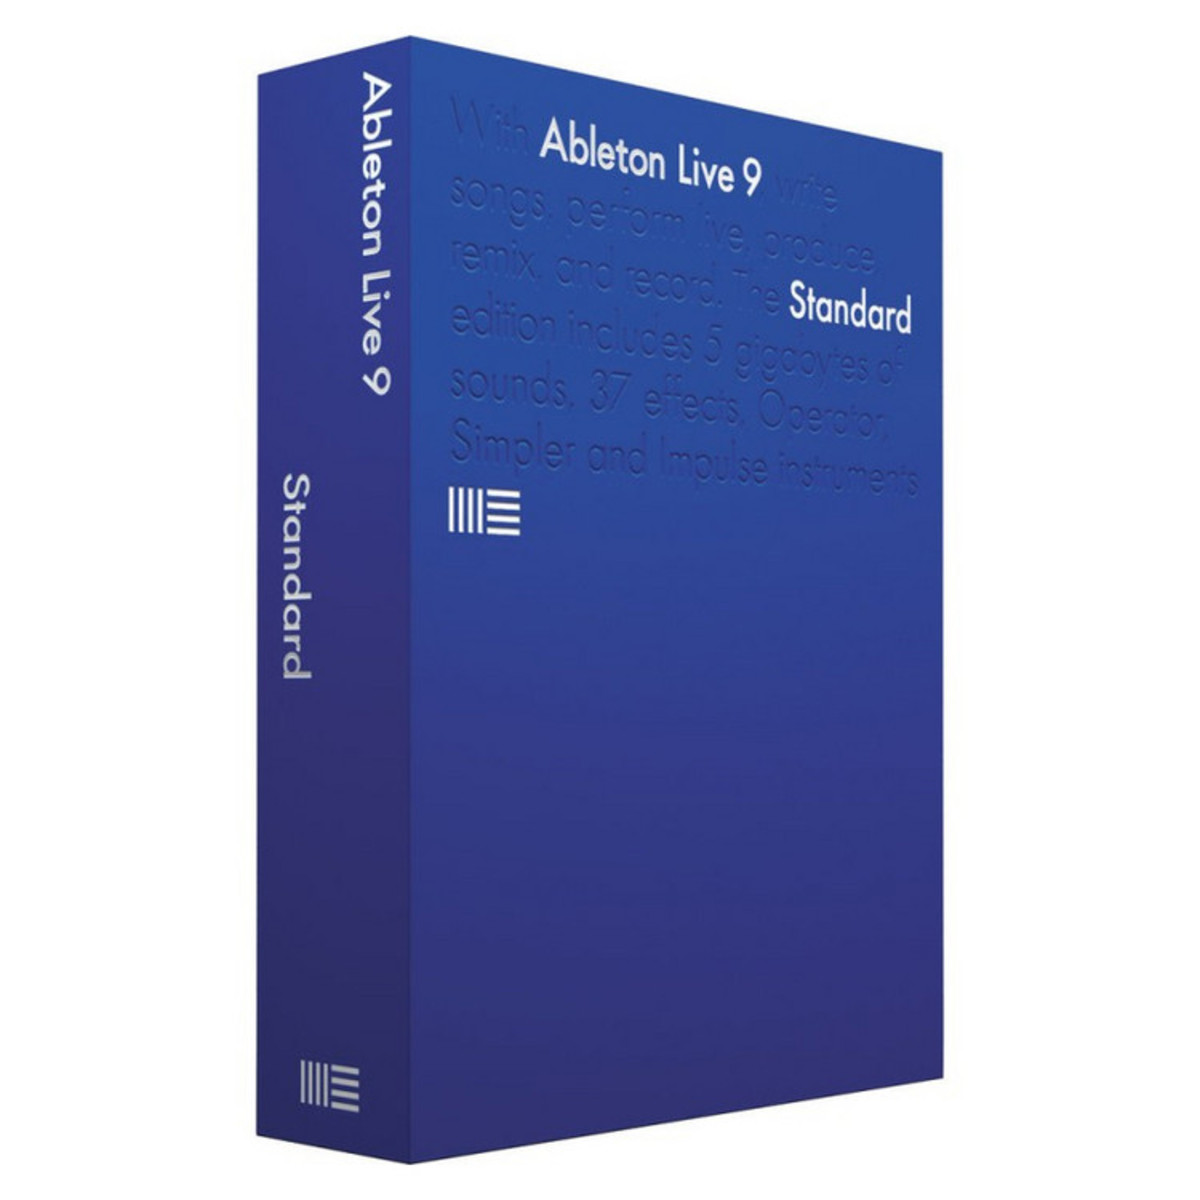 ableton live 9 standard music software upgrade from live lite at. Black Bedroom Furniture Sets. Home Design Ideas